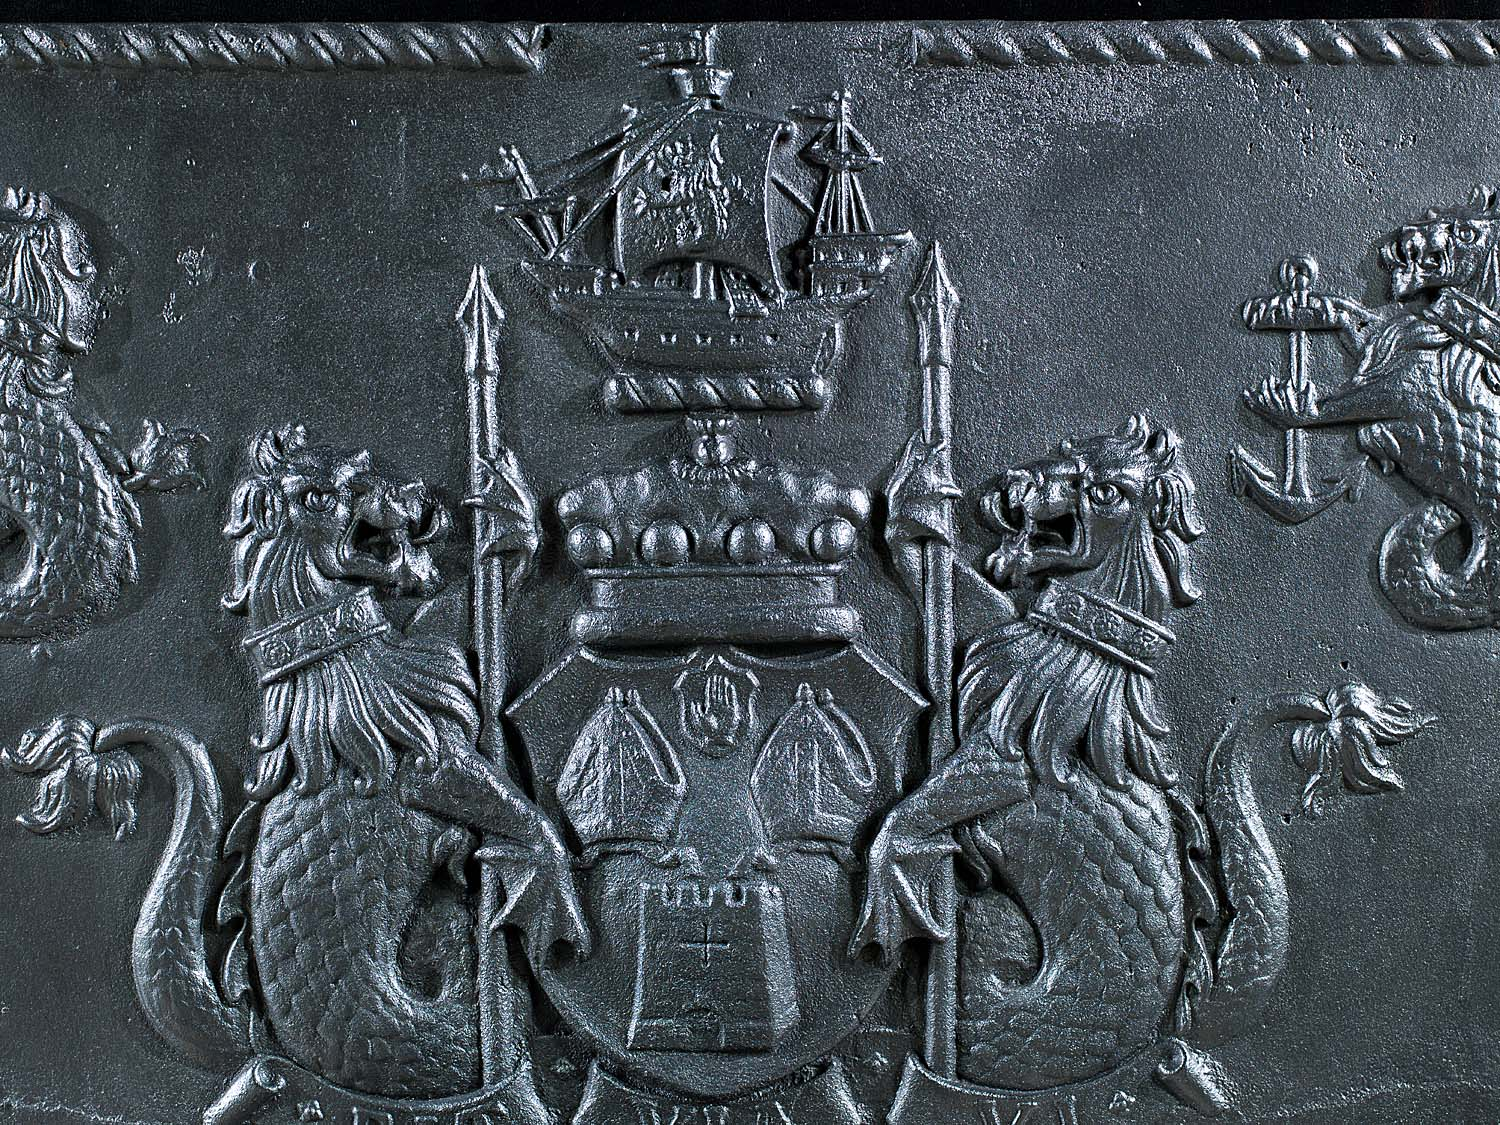 An early 20th century heraldic fire back